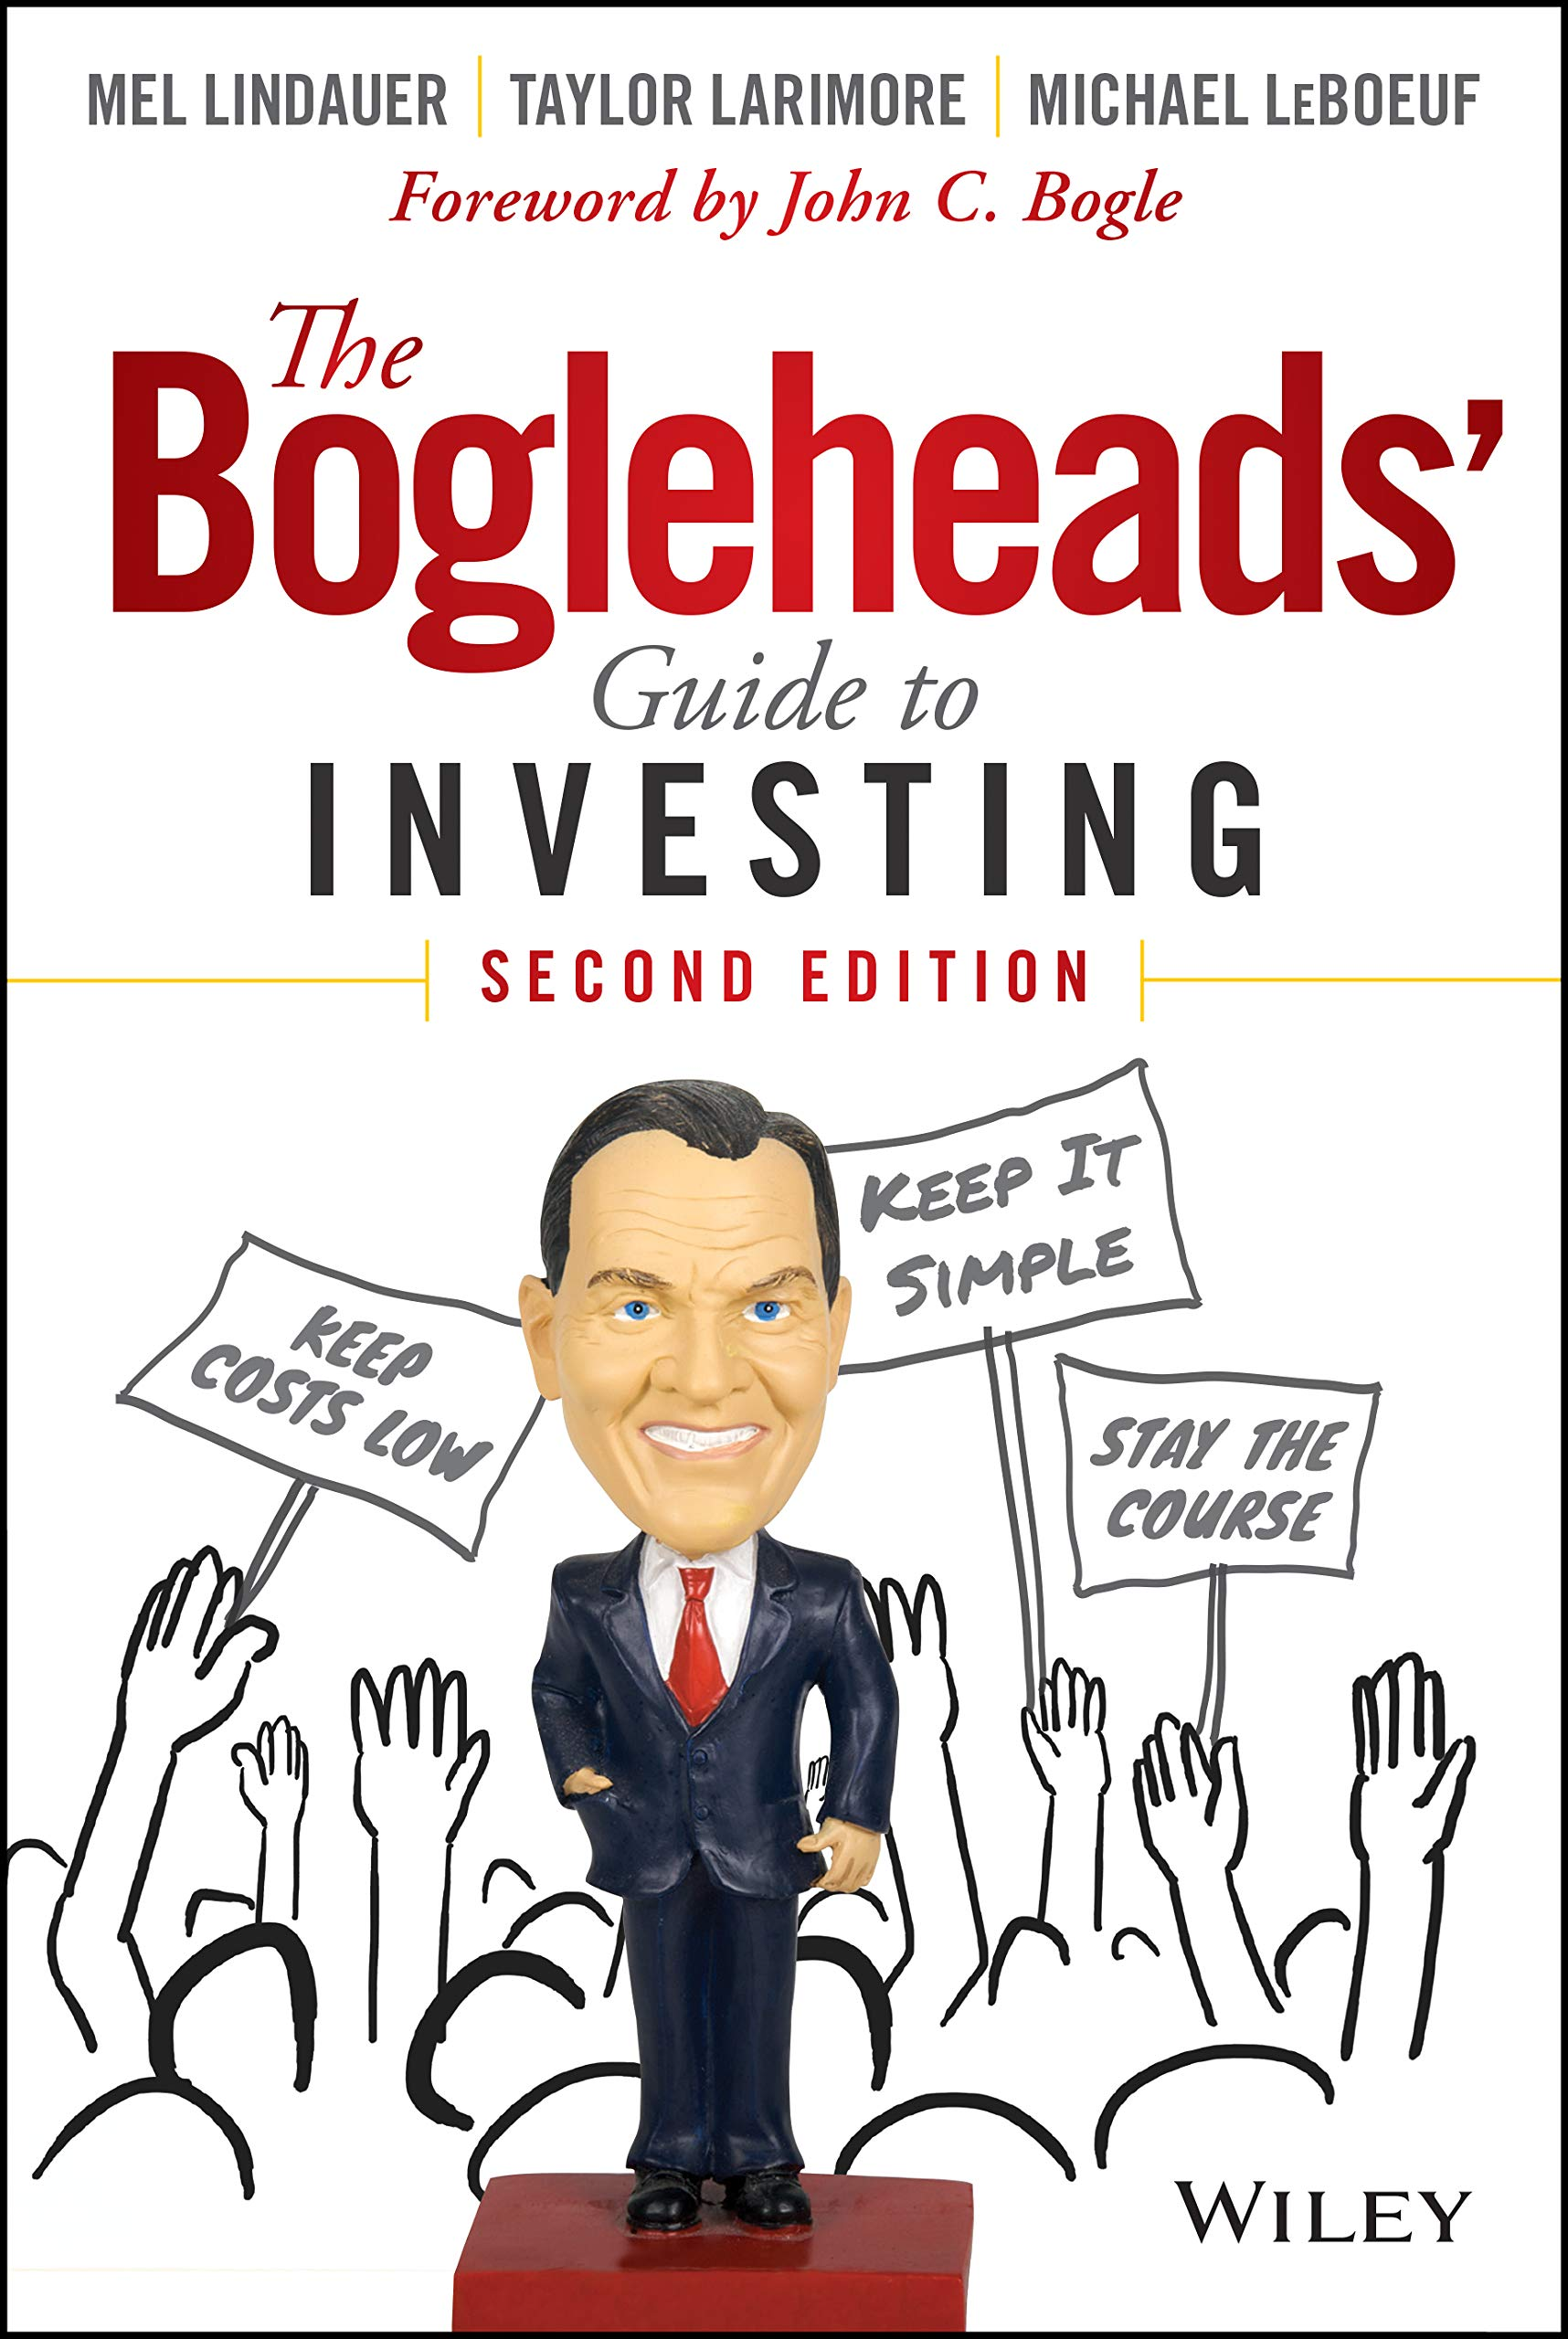 Download The Bogleheads Guide To Investing By Taylor Larimore